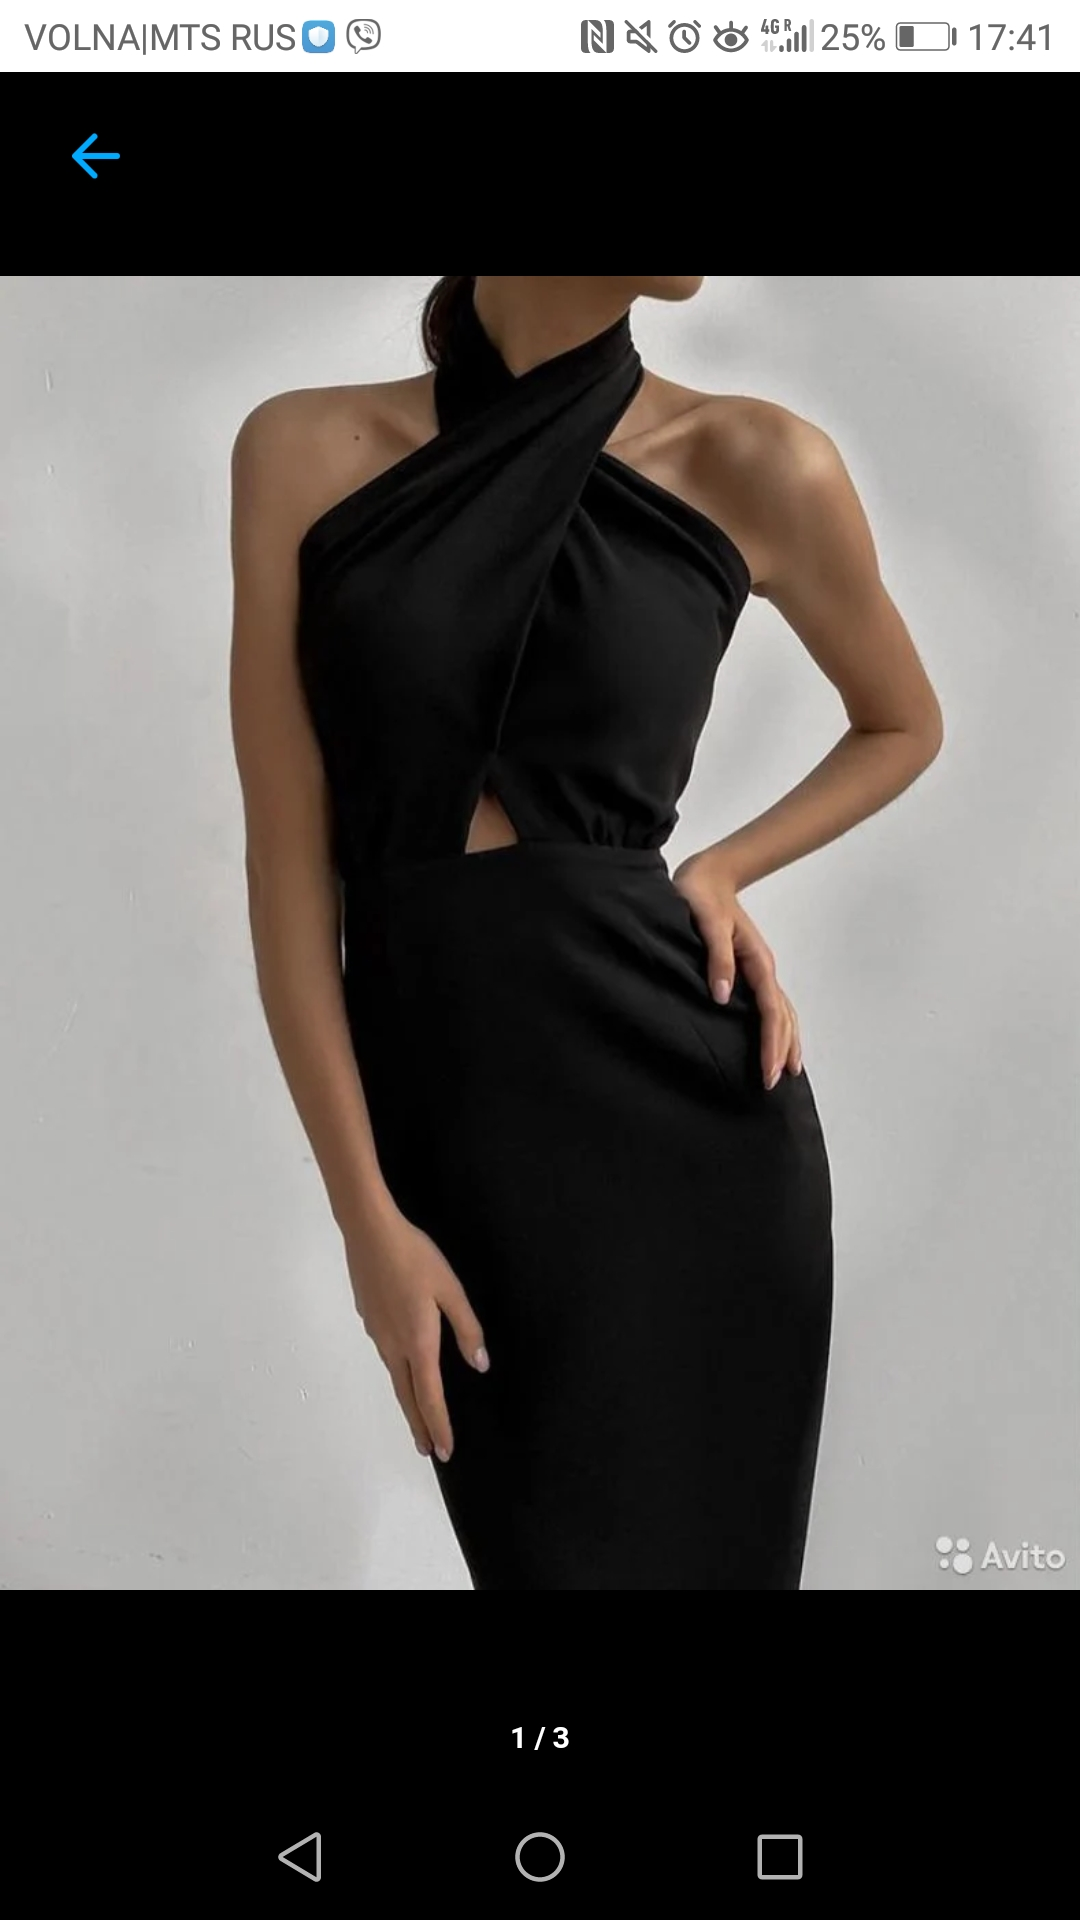 <p>We are looking for a supplier of dresses from Italy, Switzerland, Spain, USA. Interested in branded and elegant models. We have our own online store. We will work on a dropshipping system.</p>  <p>(translated from russian)</p>